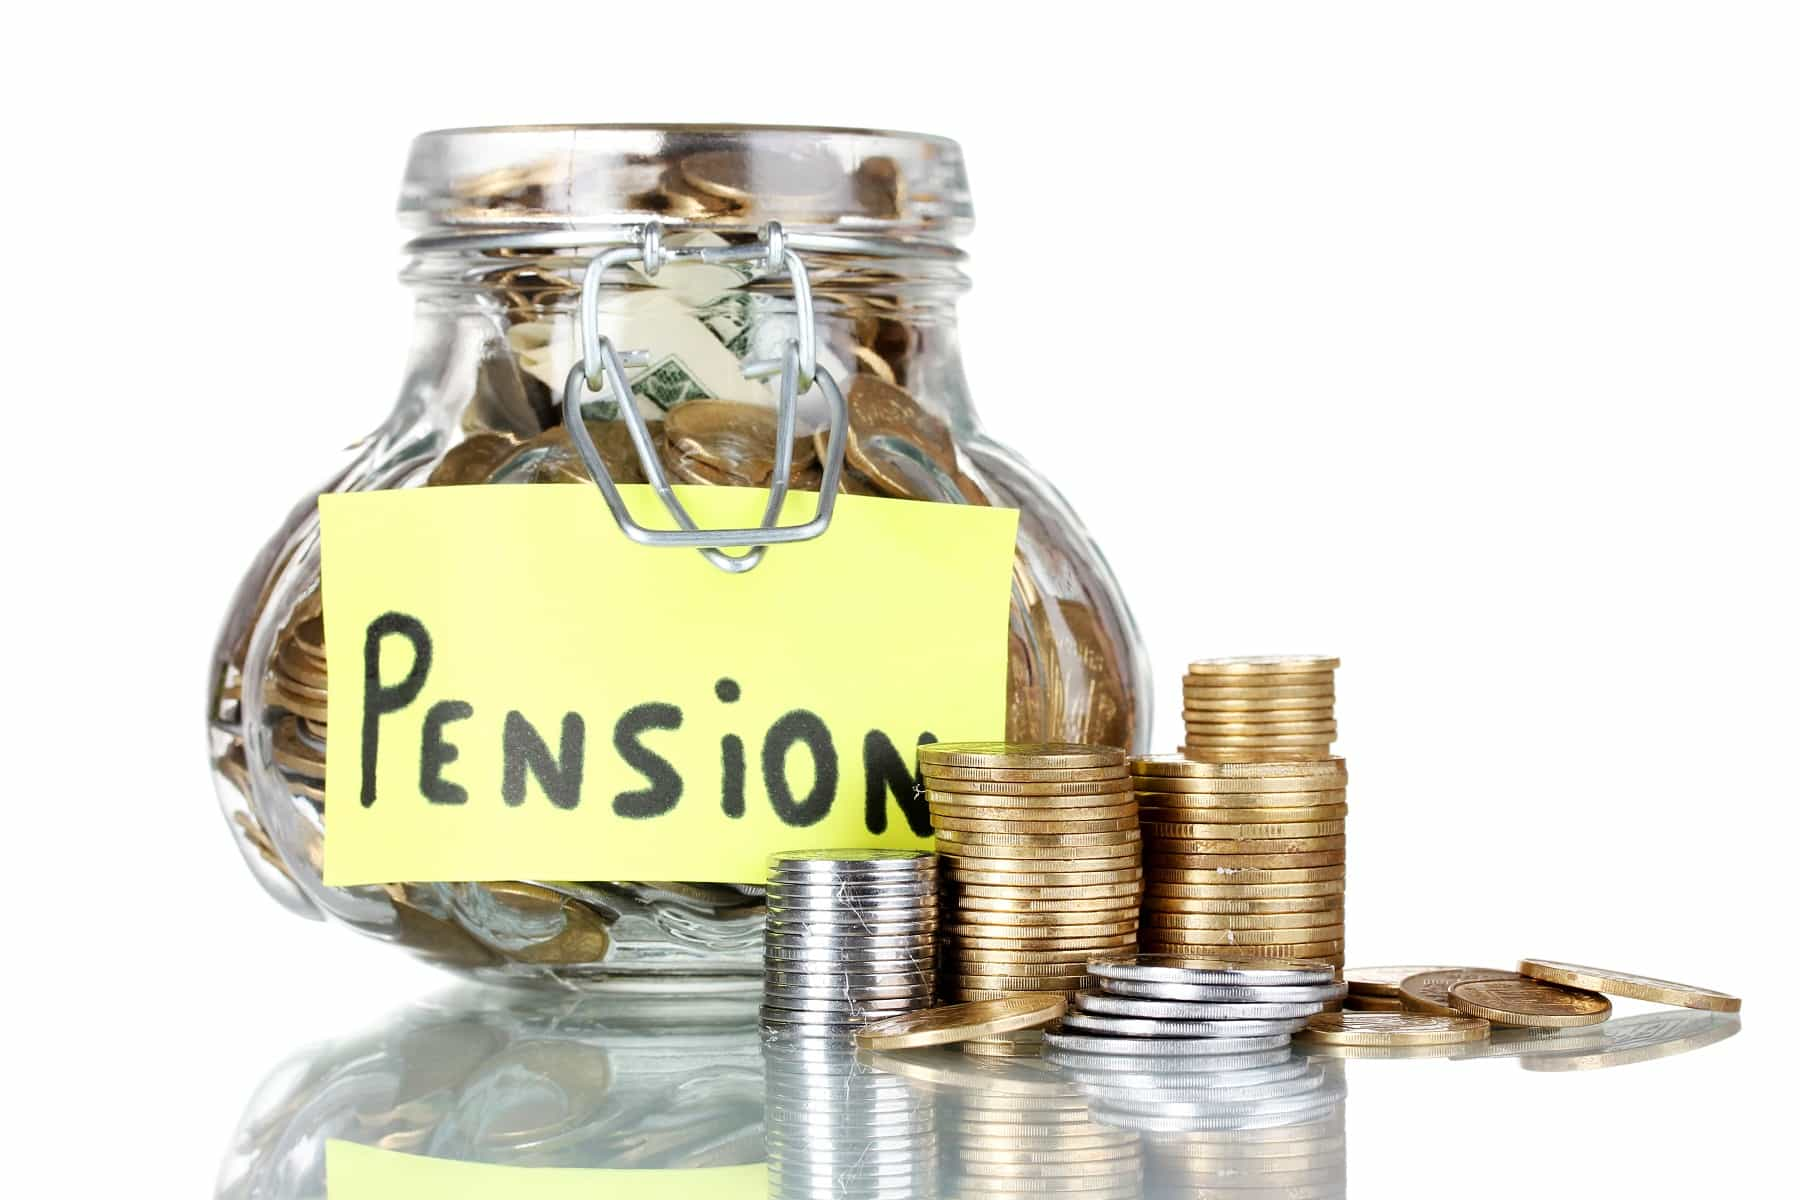 reliance pension fund